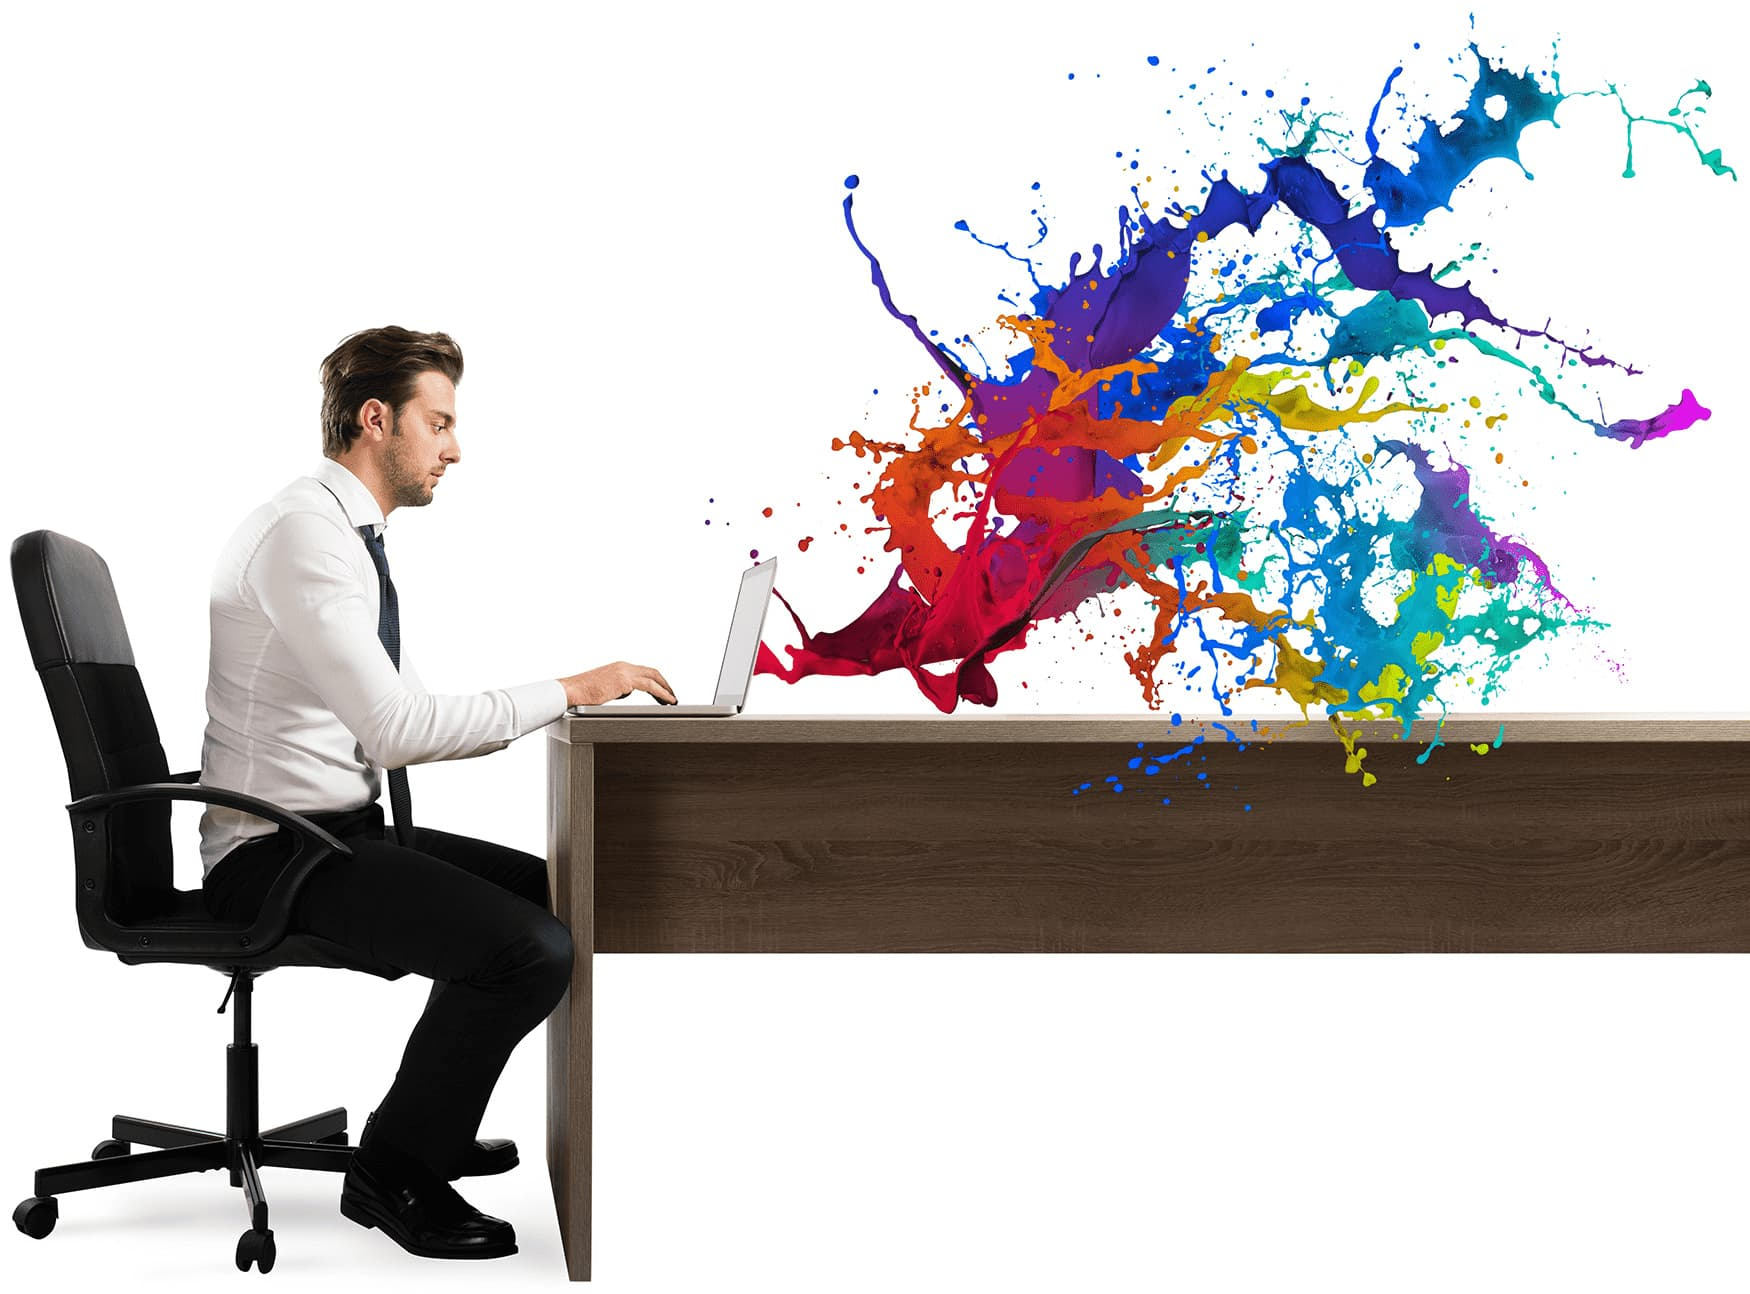 Man using a computer at a desk with colors emanating from the screen